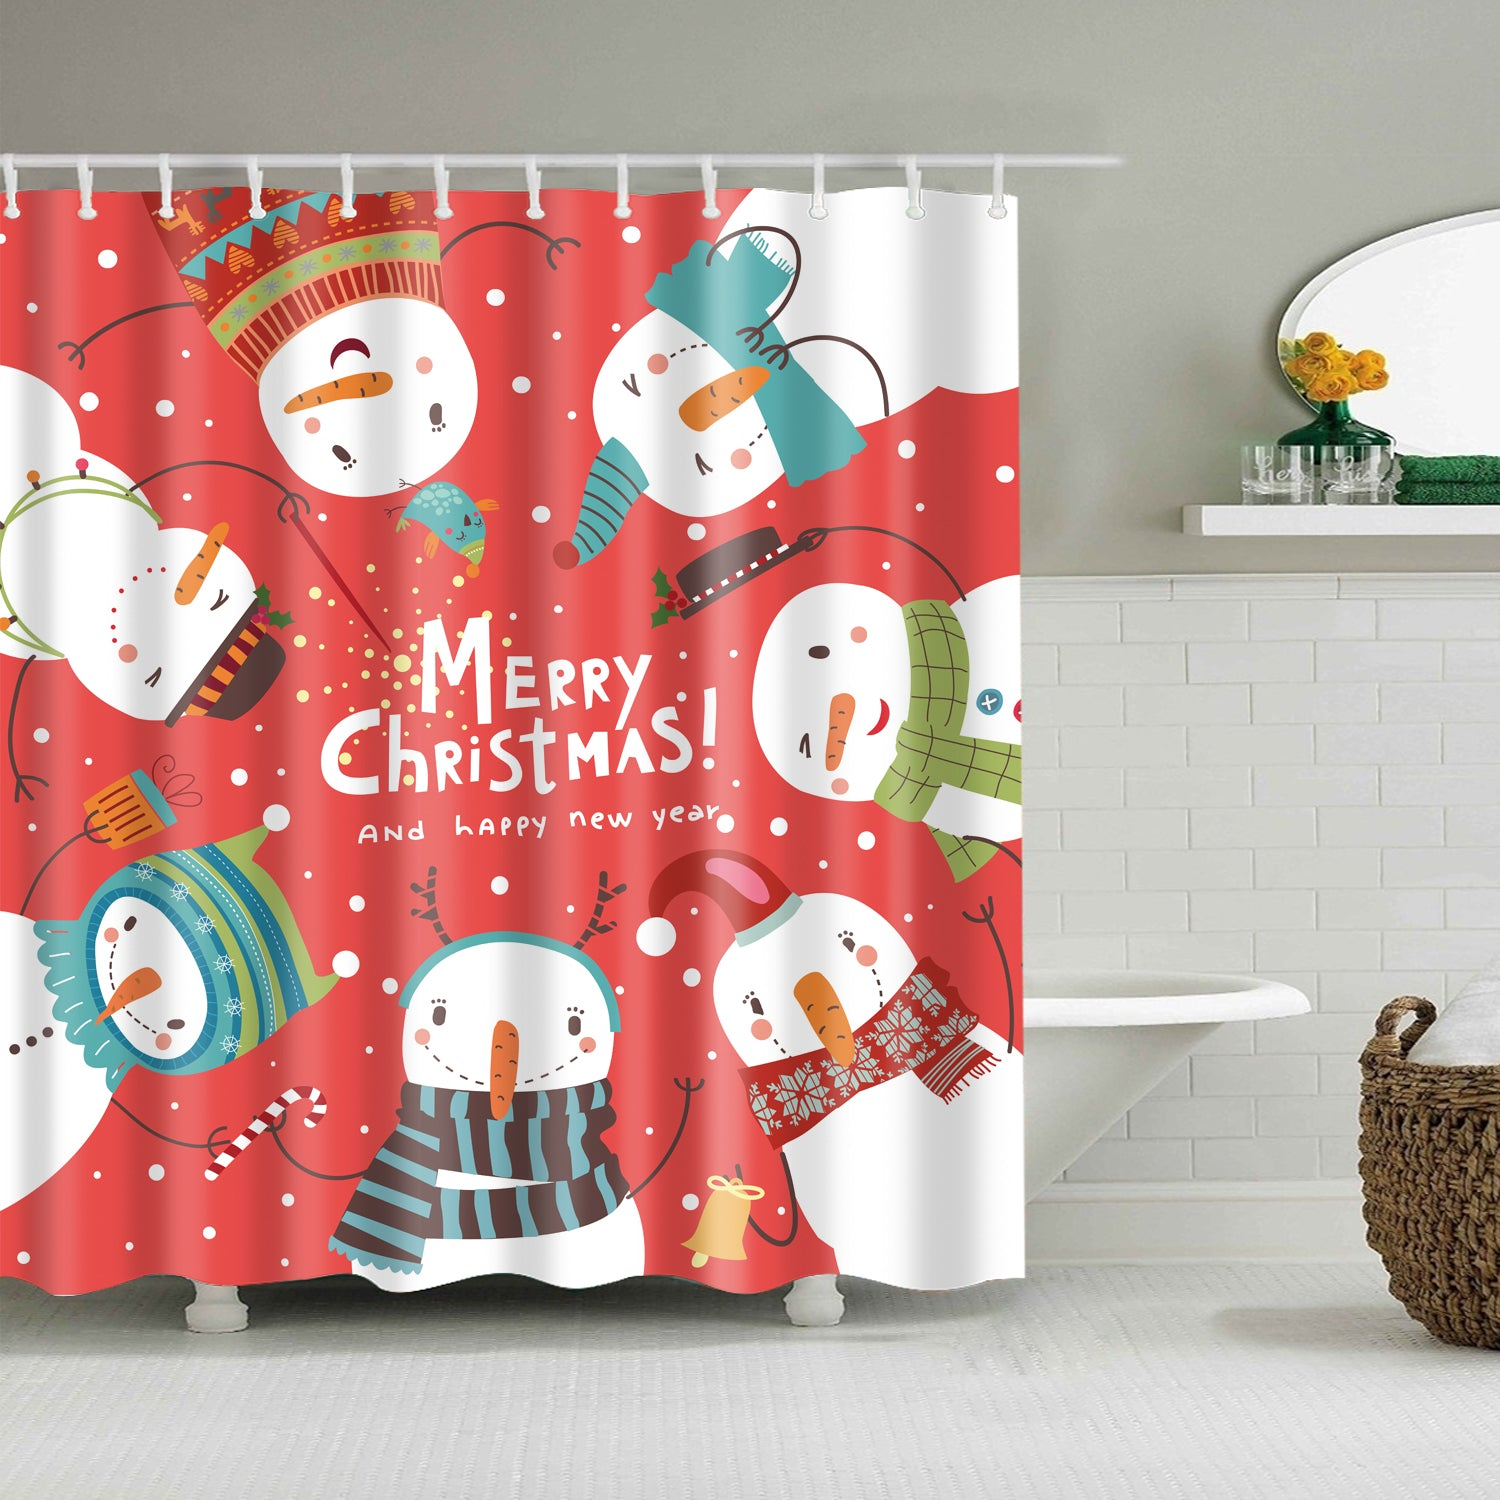 Six Different Snowman Happy Holiday Shower Curtain